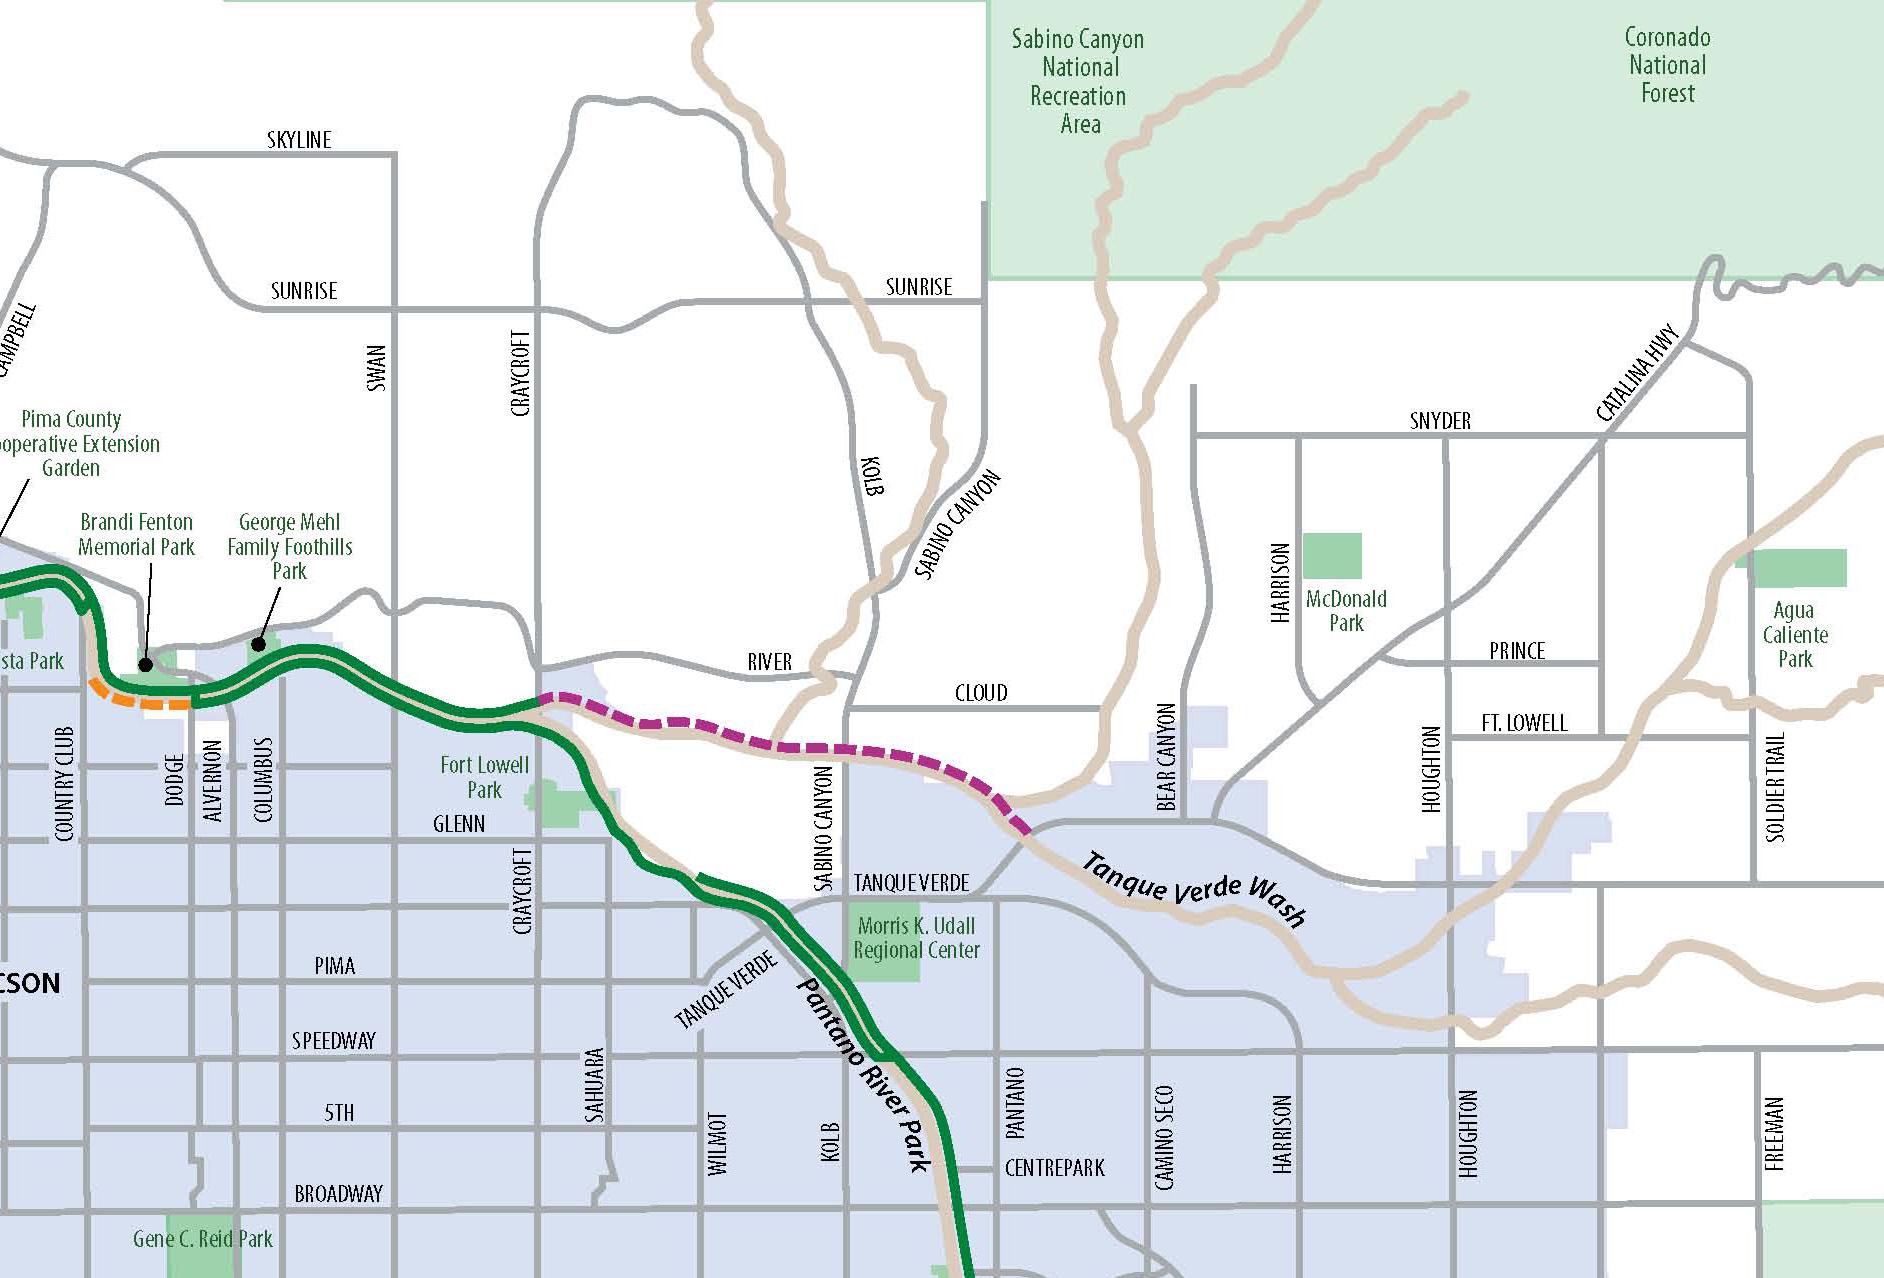 Camino Del Oro Parking County Working On Master Plan To Extend The Loop Path Network